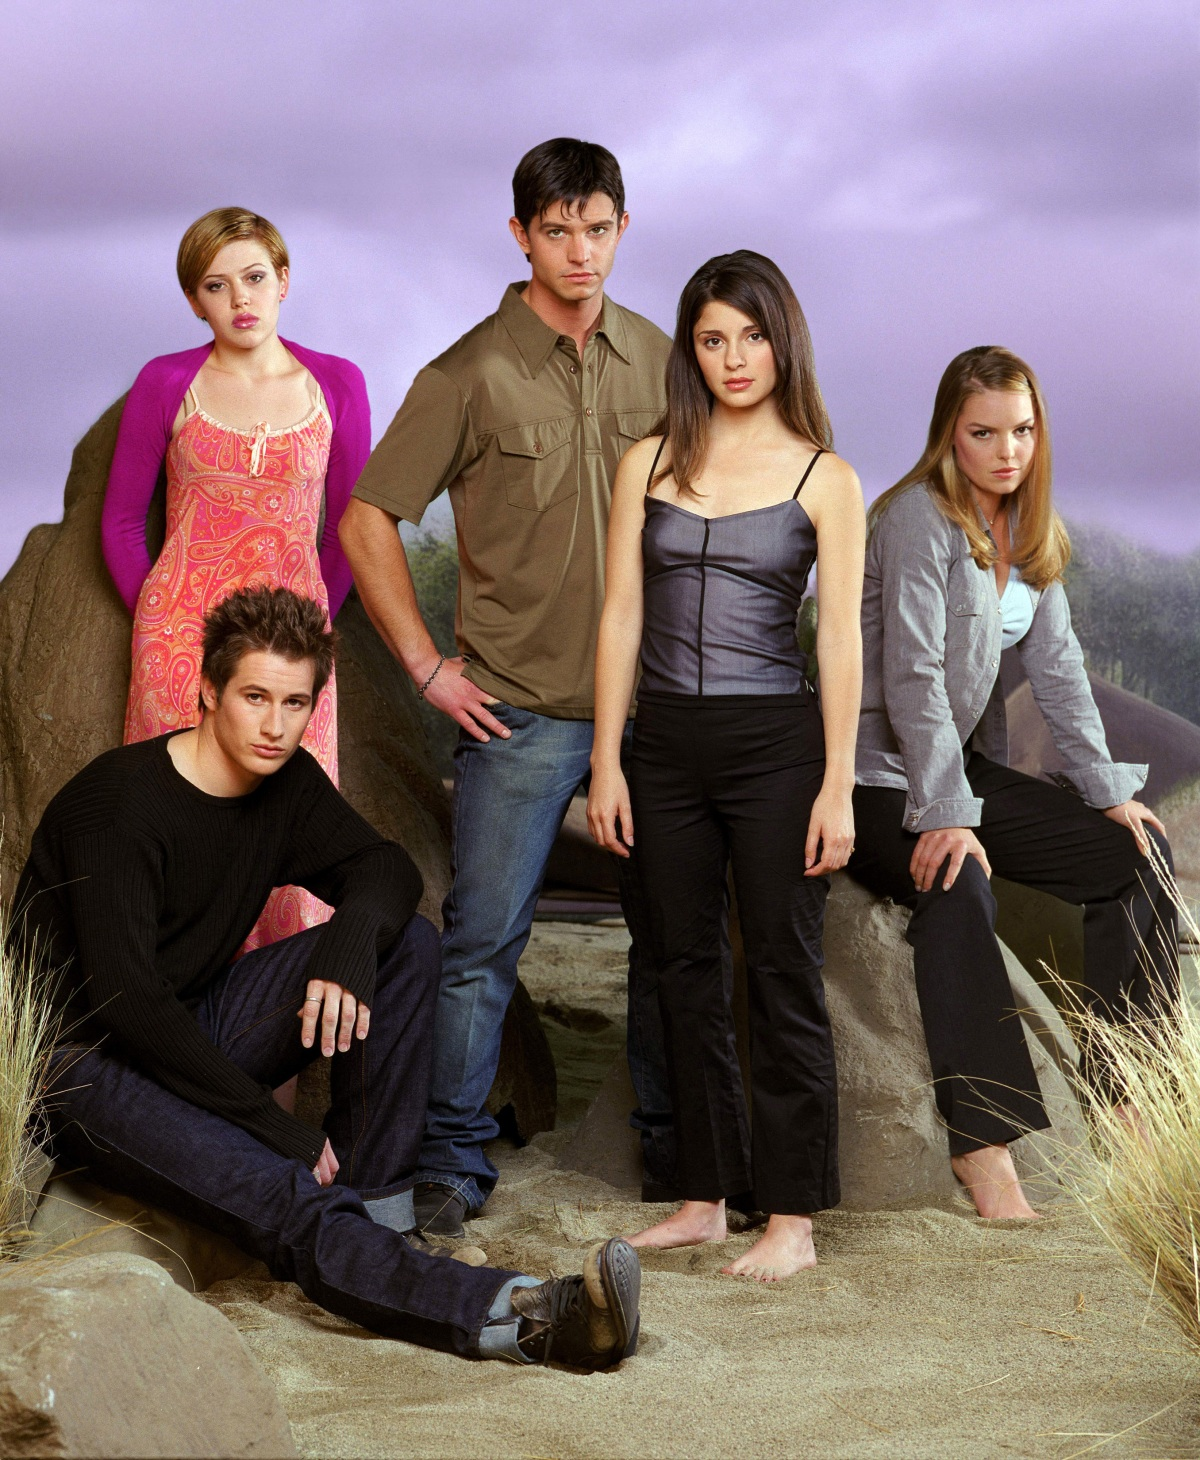 http://dvdbash.files.wordpress.com/2012/05/shiri_appleby_jason_behr_majandra_delfino_katherine_heigl_brendan_fehr_dvdbash.jpg?w=1200